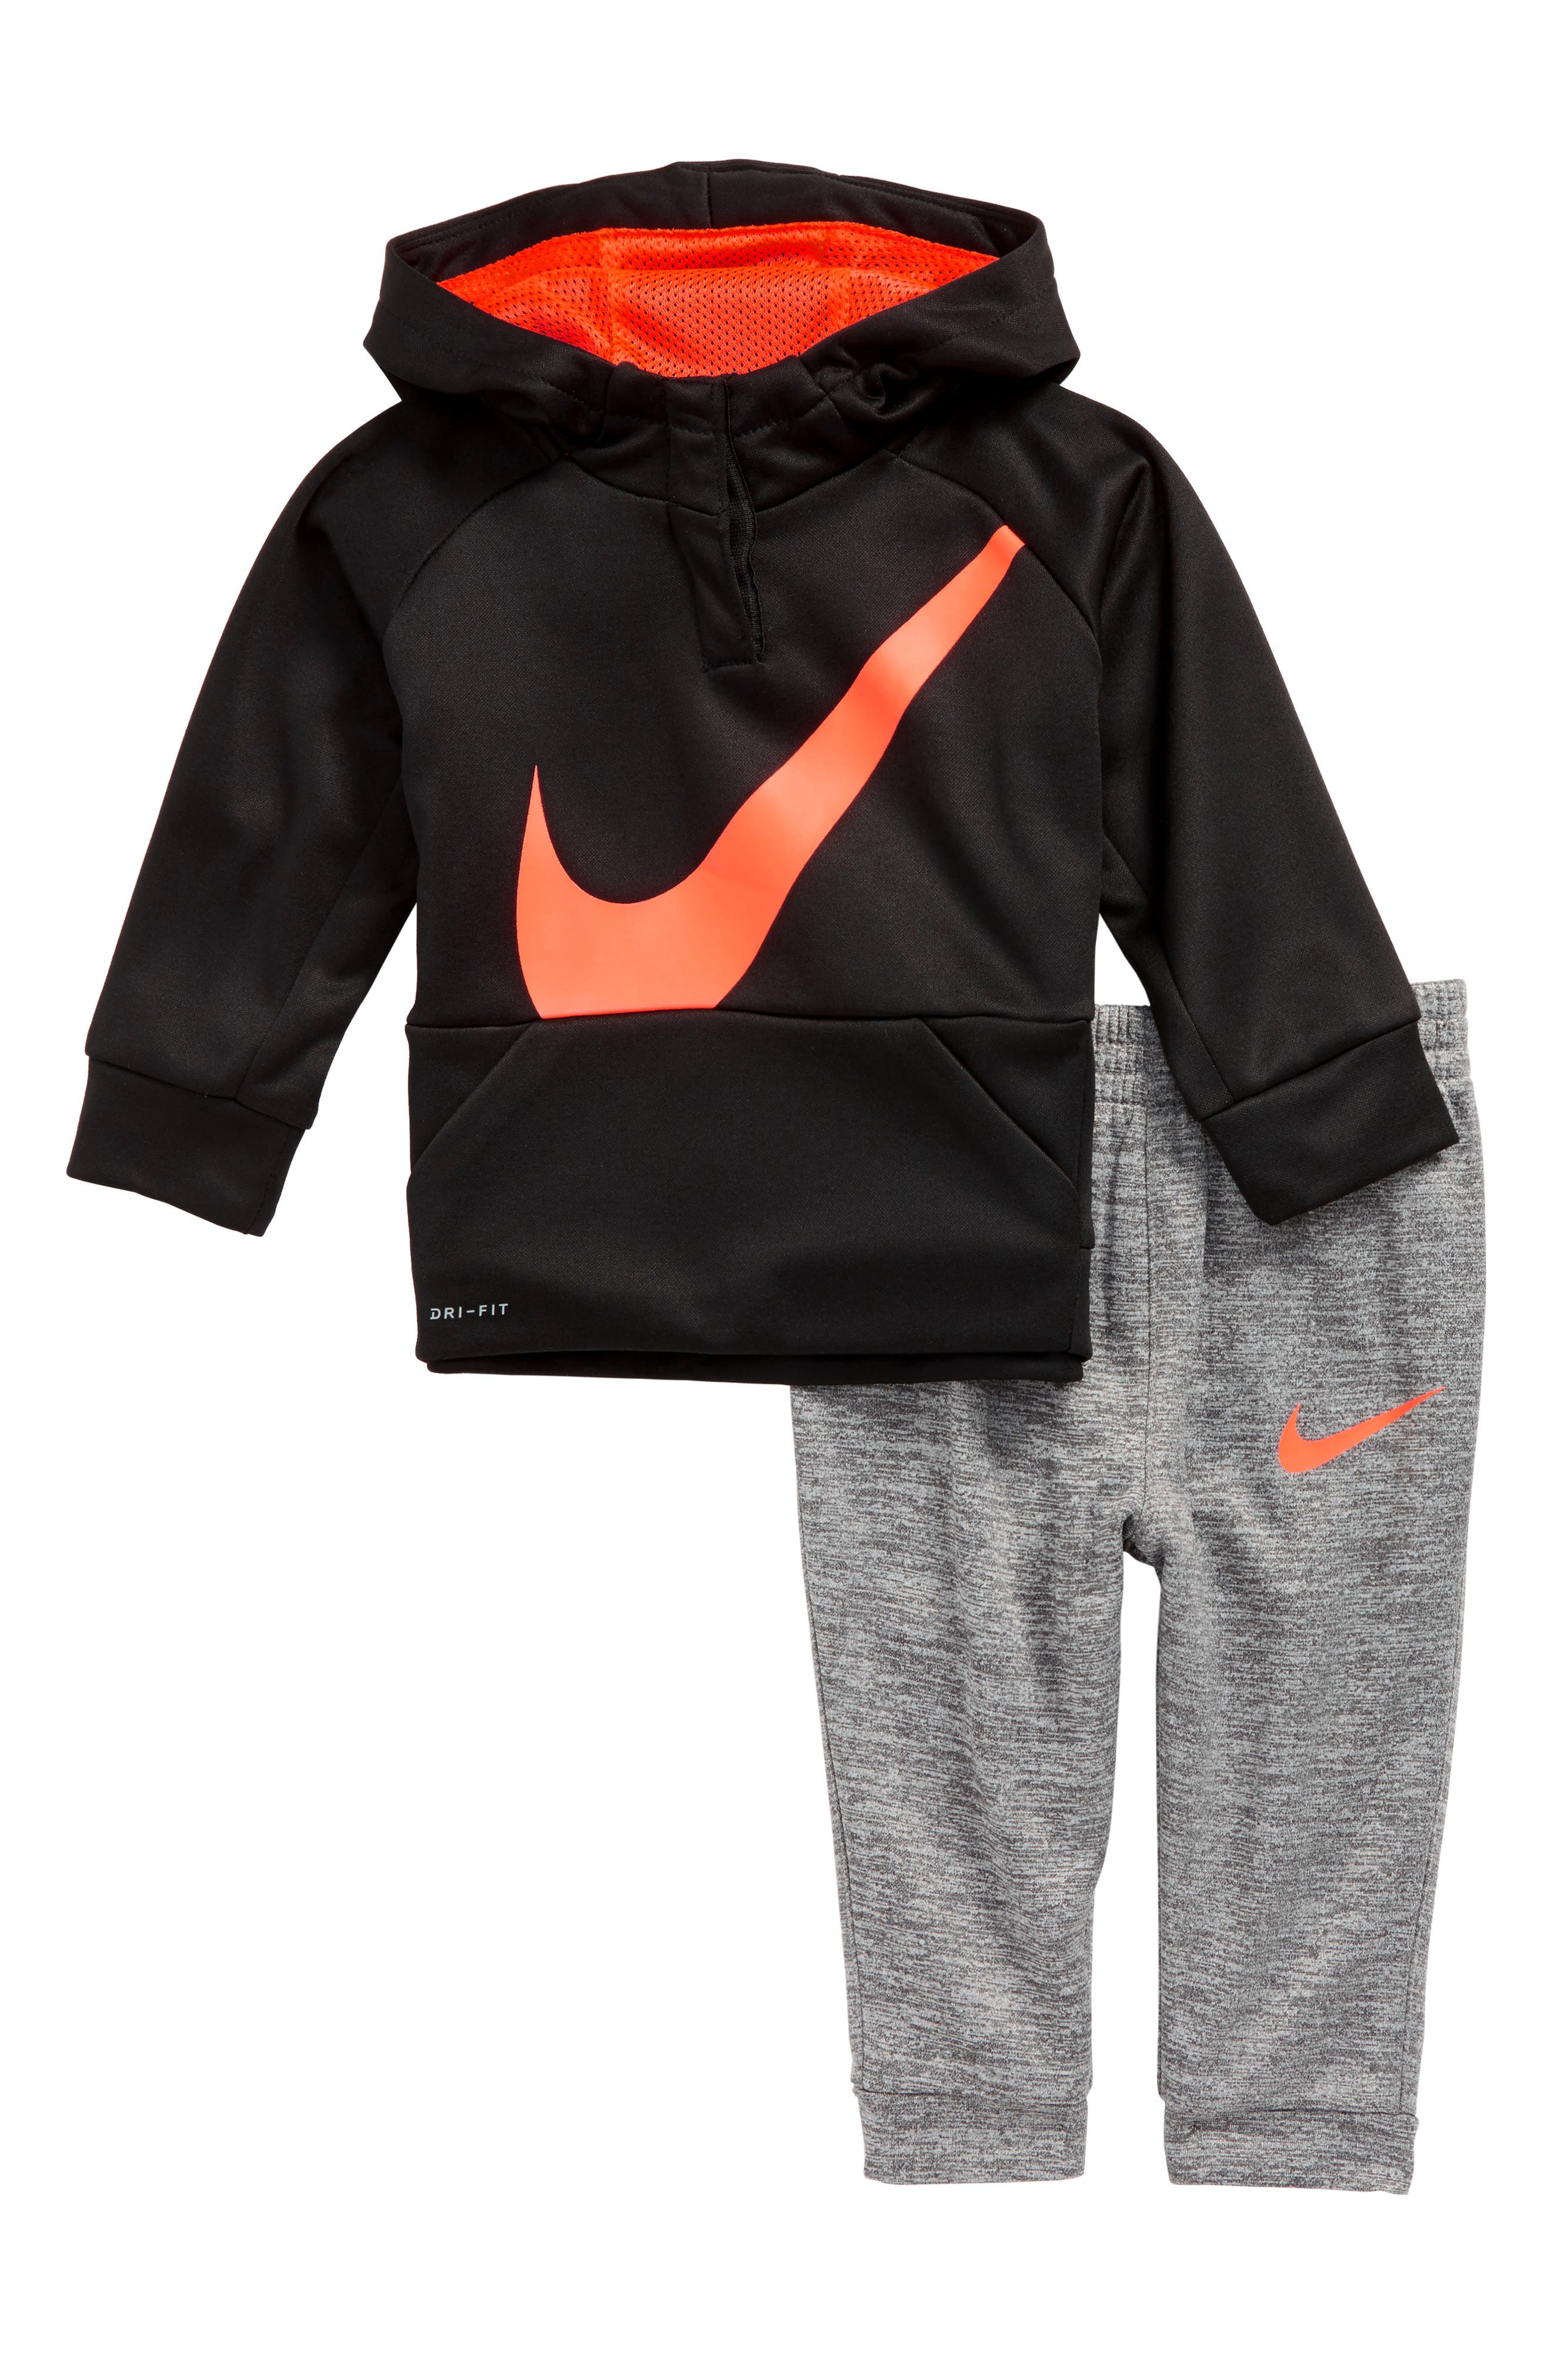 Alternate Image 1 Selected - Nike Swoosh Therma-FIT Oversize Hoodie & Pants Set (Baby Boys)